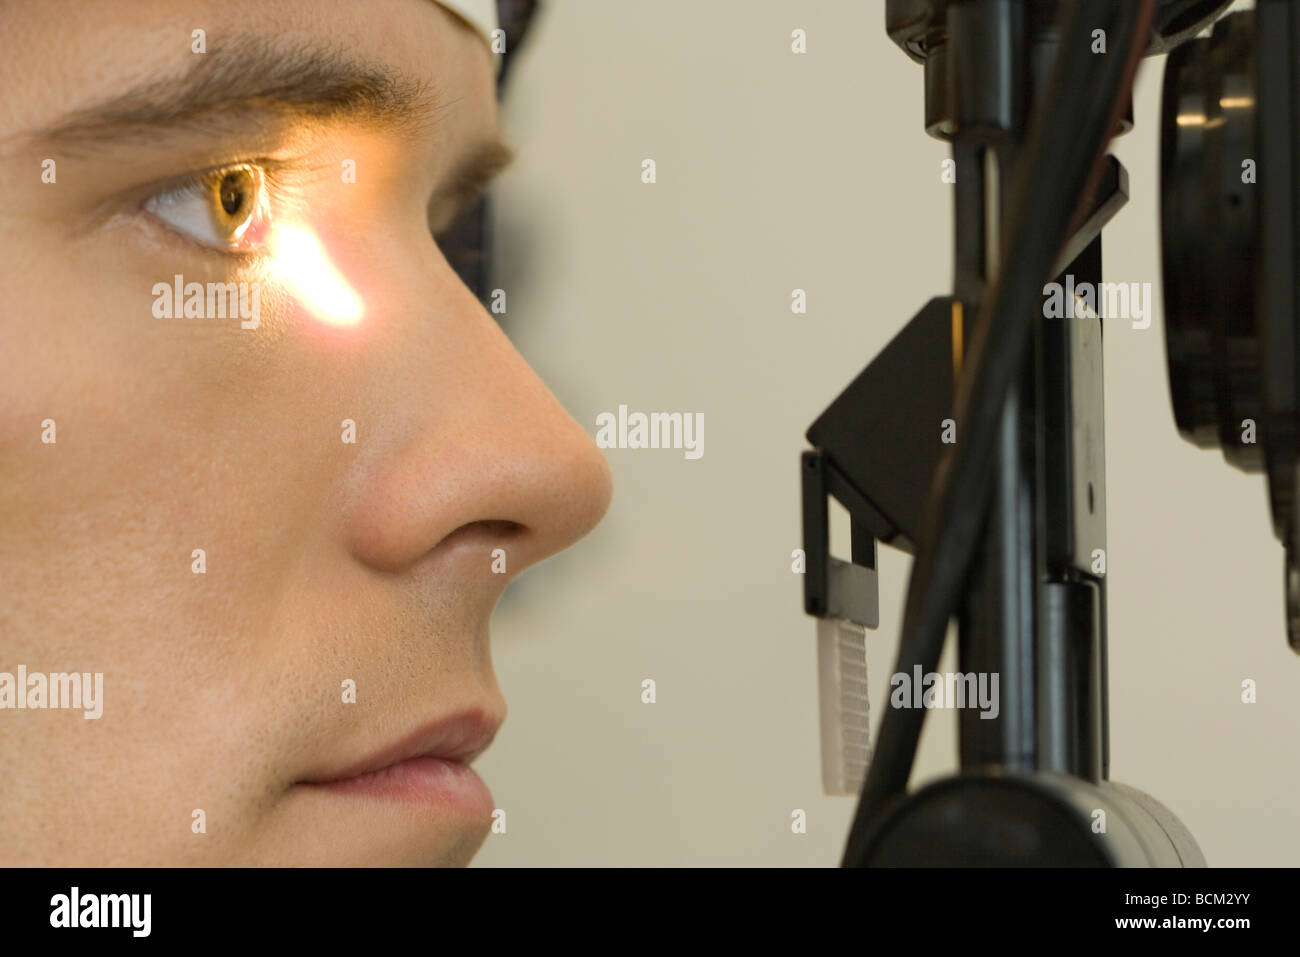 Male patient undergoing eye exam, close-up - Stock Image